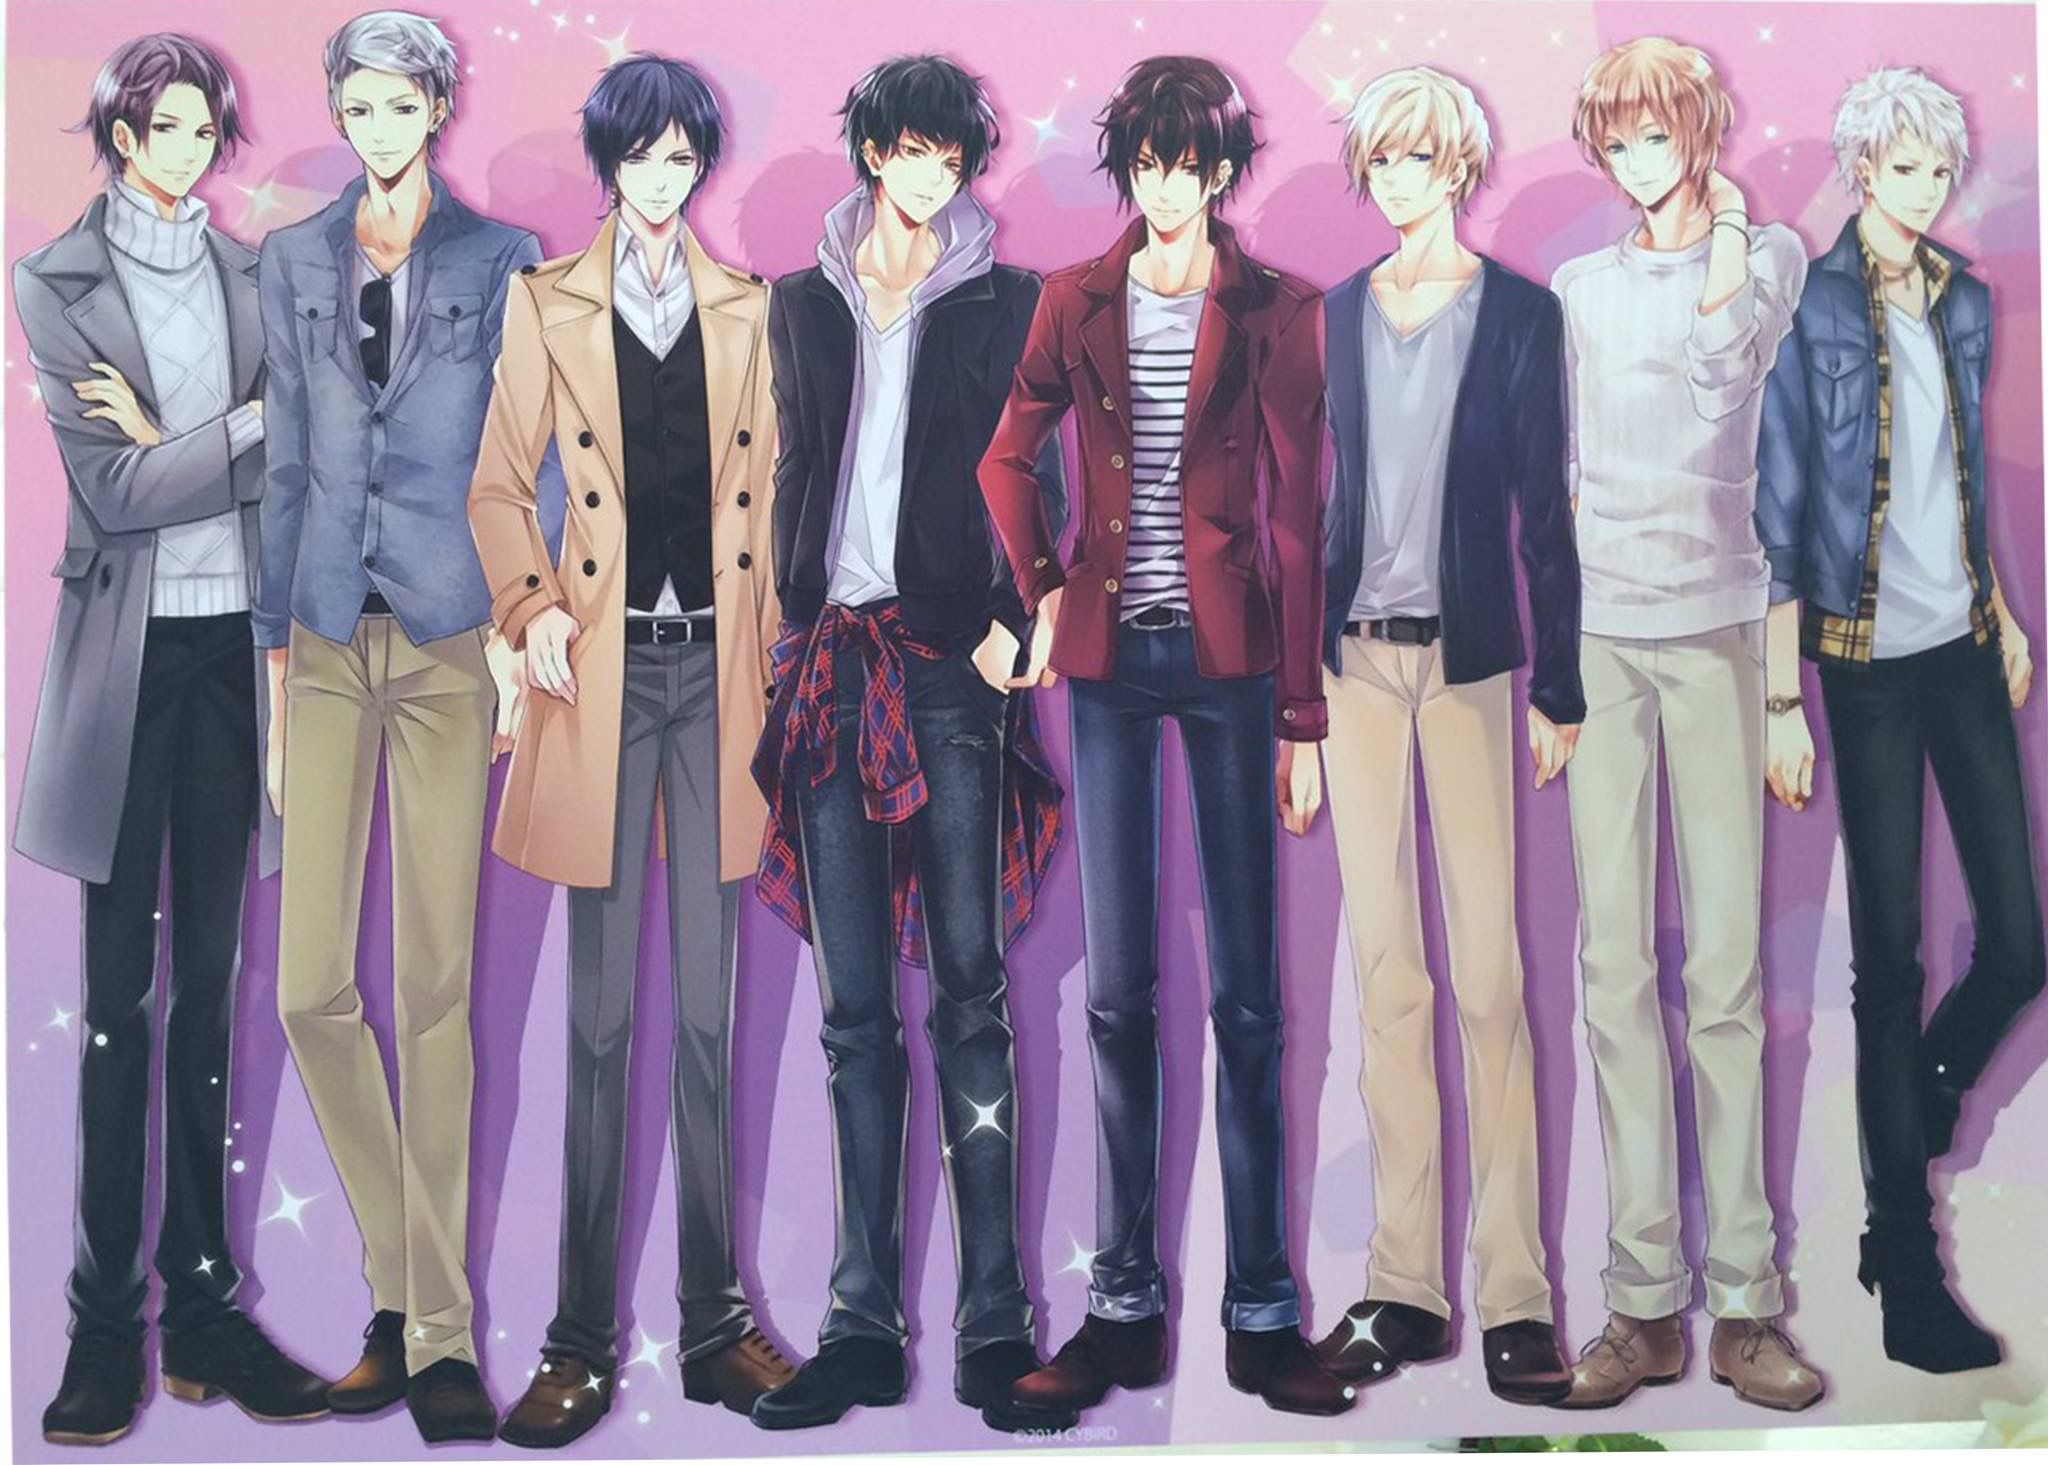 Prince In Casual Attire Anime Inspired Outfits Anime Outfits Anime Guys Shirtless